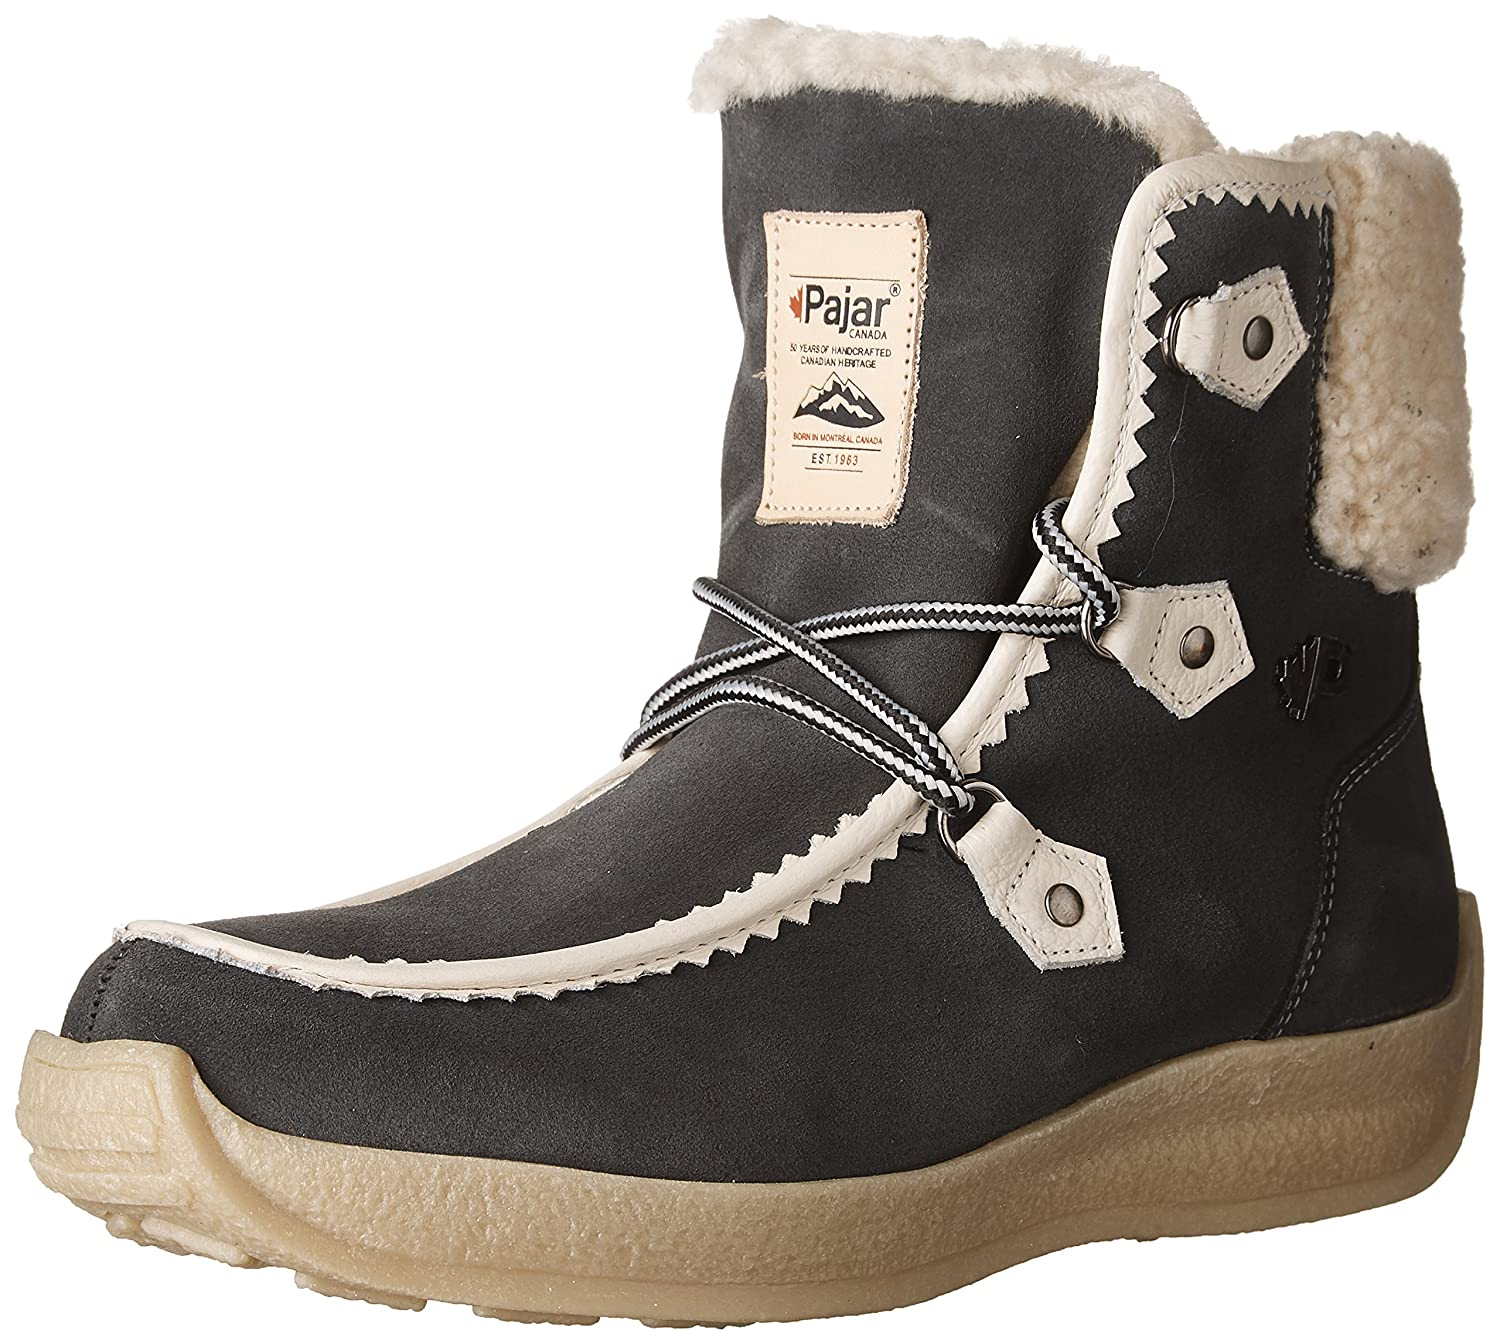 Pajar Women's ABY Snow Boots